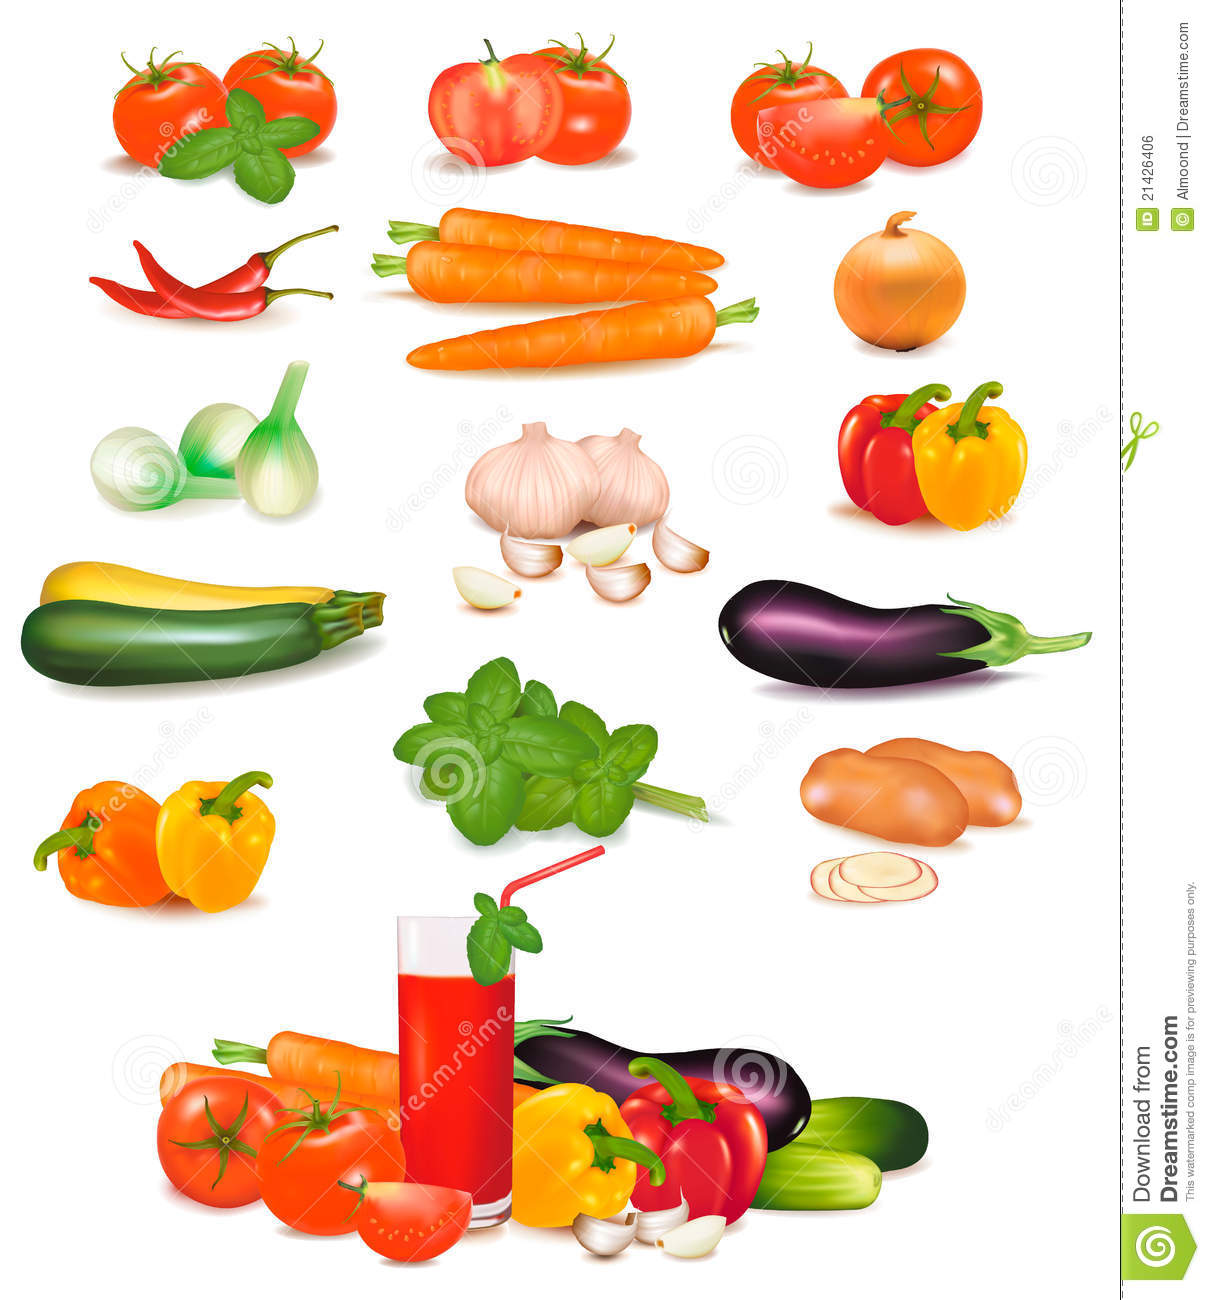 The Big Colorful Group Of Vegetables. Stock Vector - Image ...